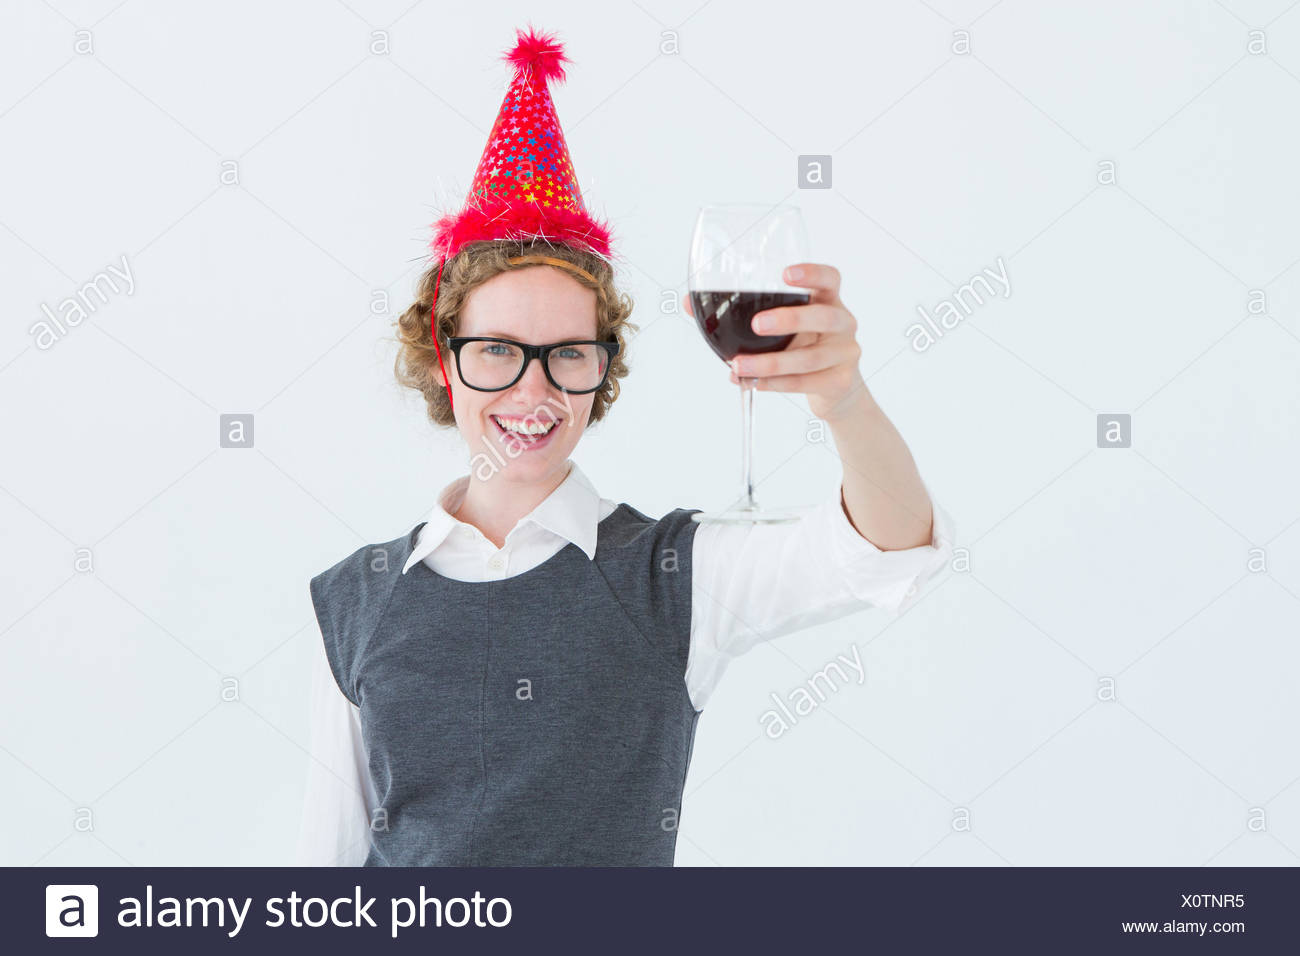 Happy geeky hipster toasting - Stock Image